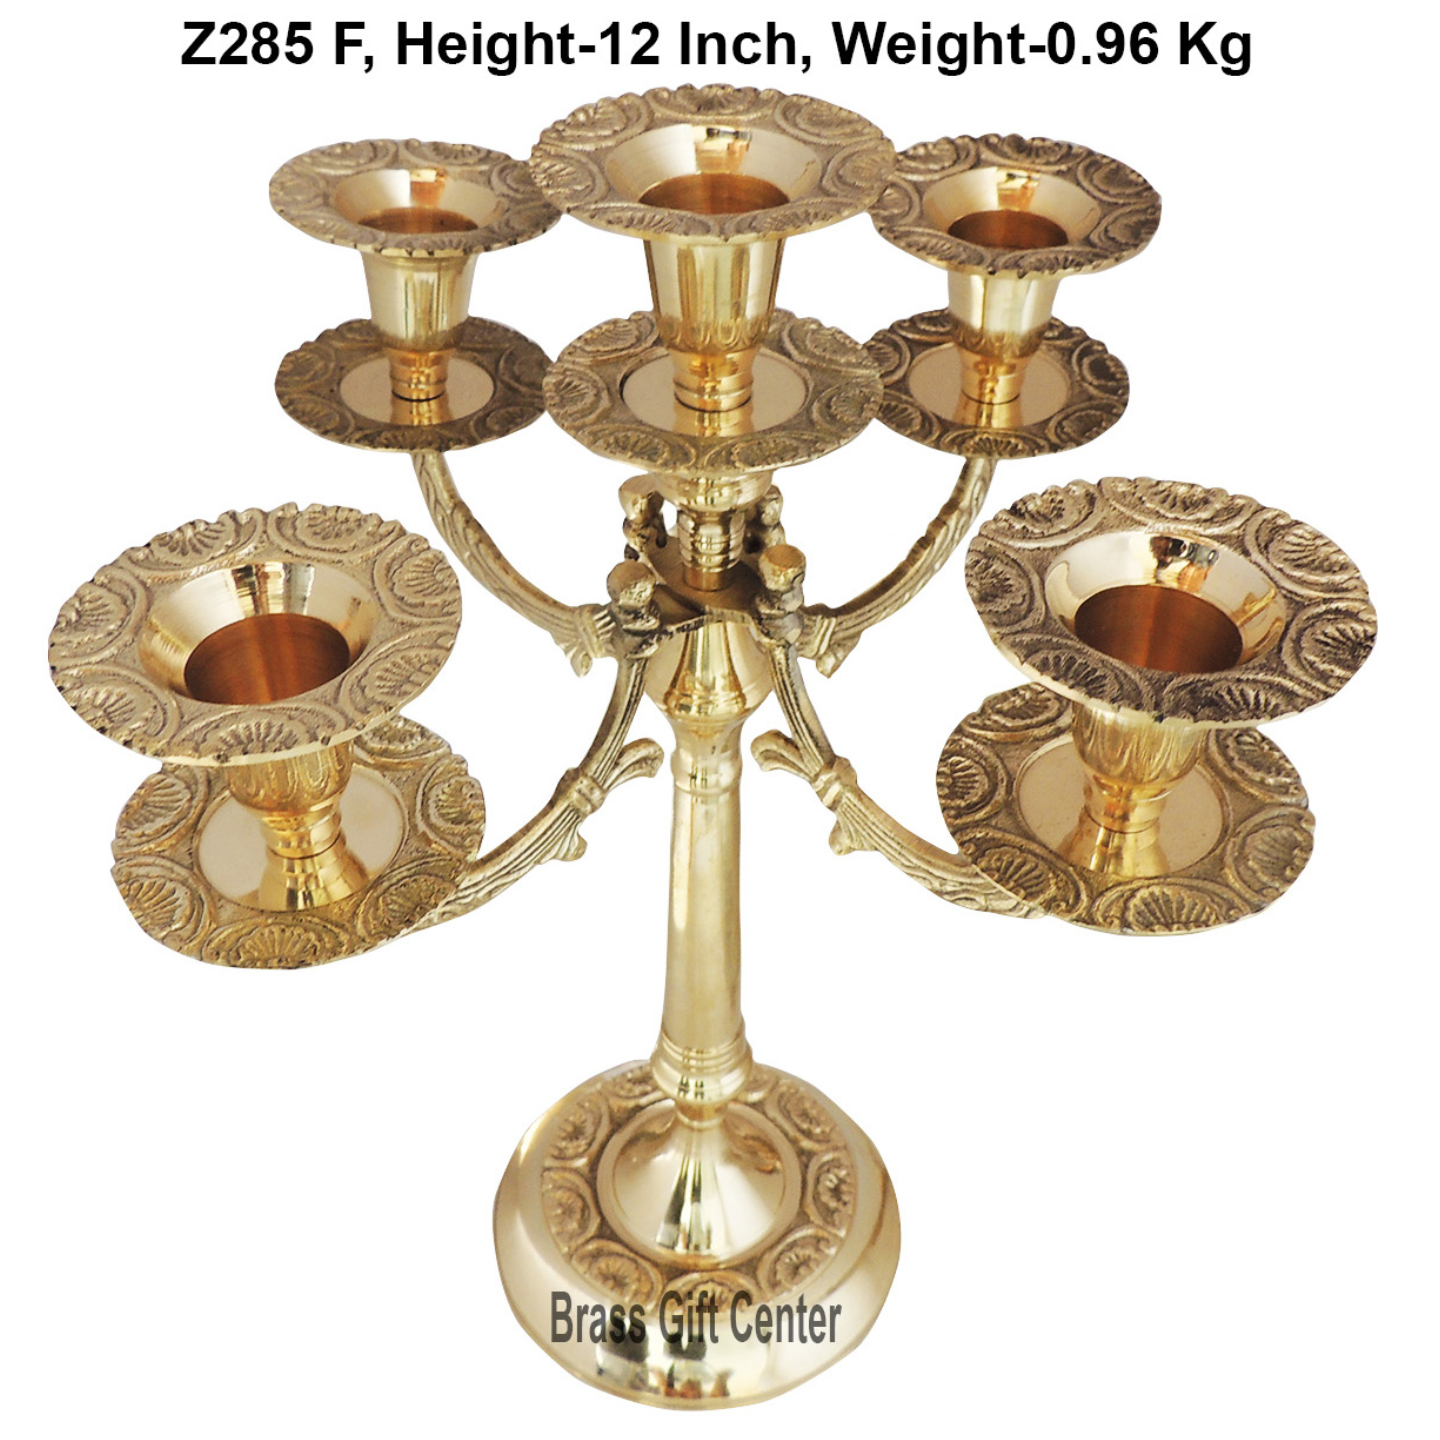 Brass Five Bati Candle Stand - 12 Inch  (Z285 F)